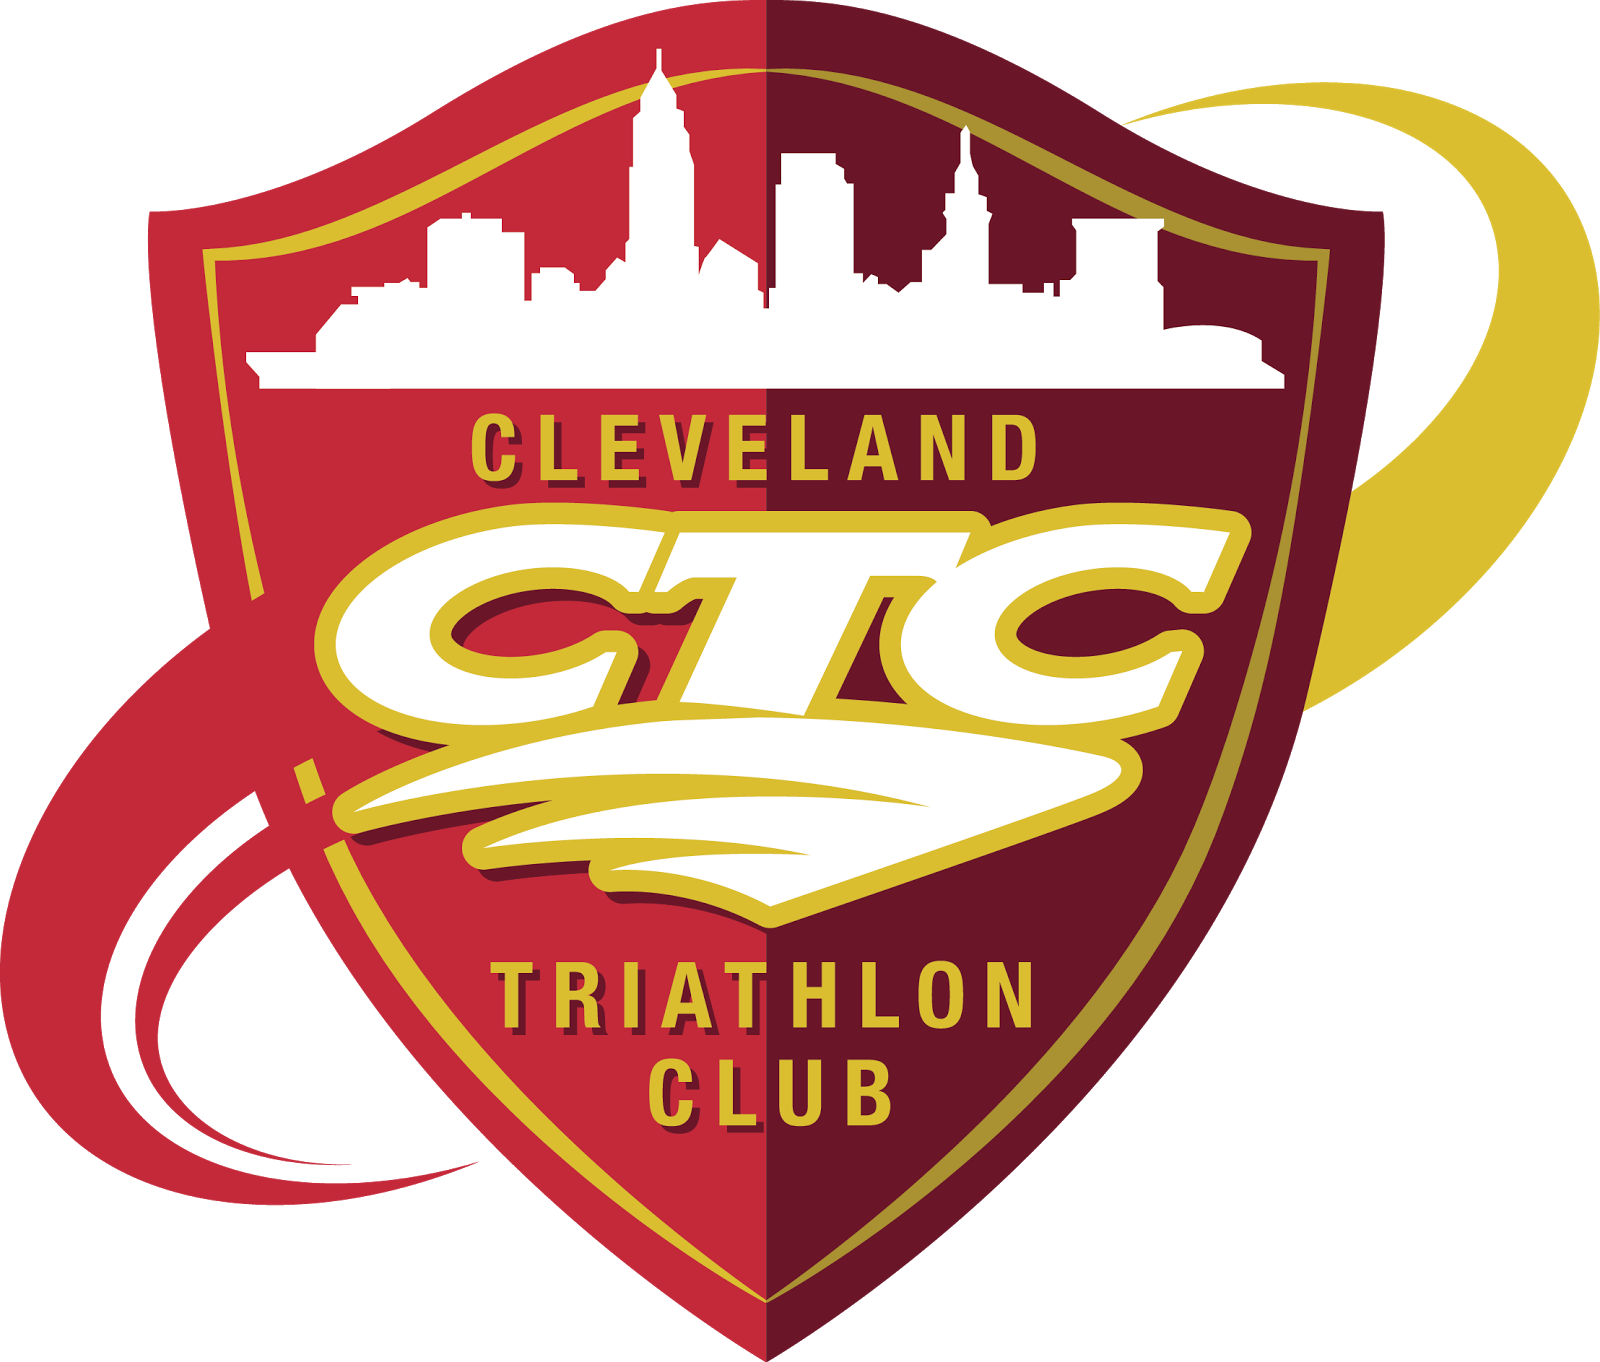 Member & Board Member of Cleveland Tri Club